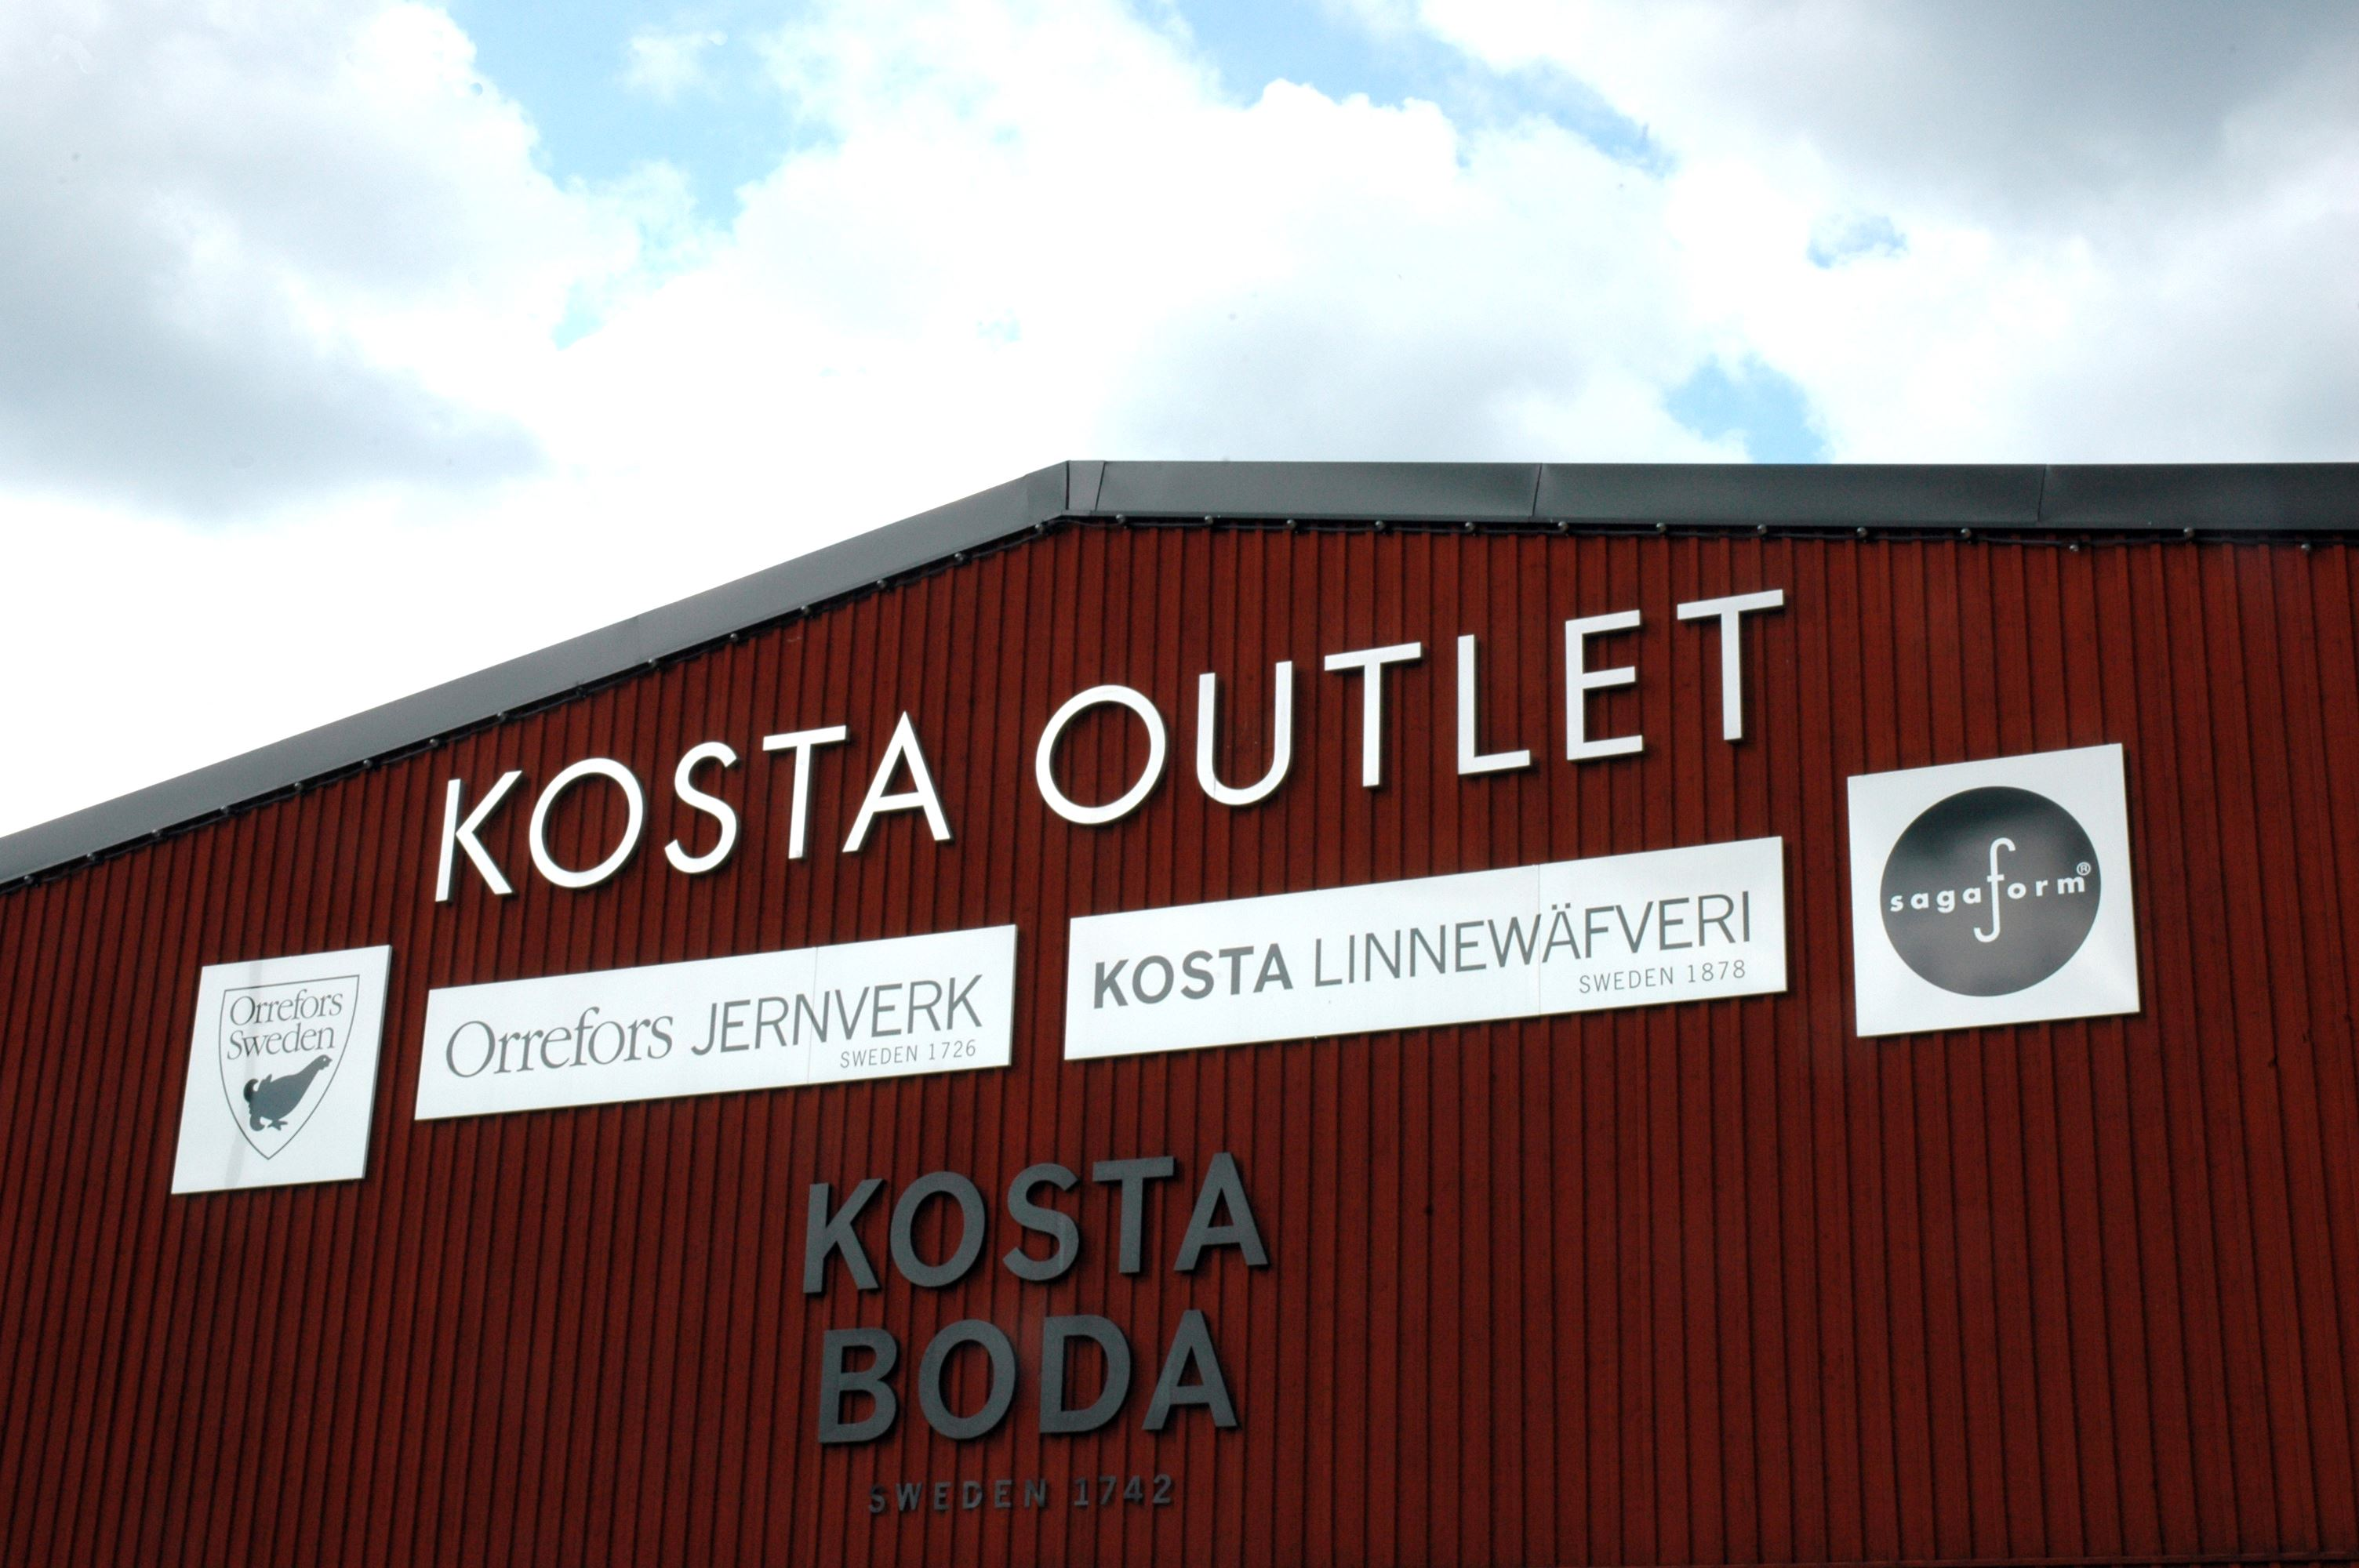 kosta outlet hotell